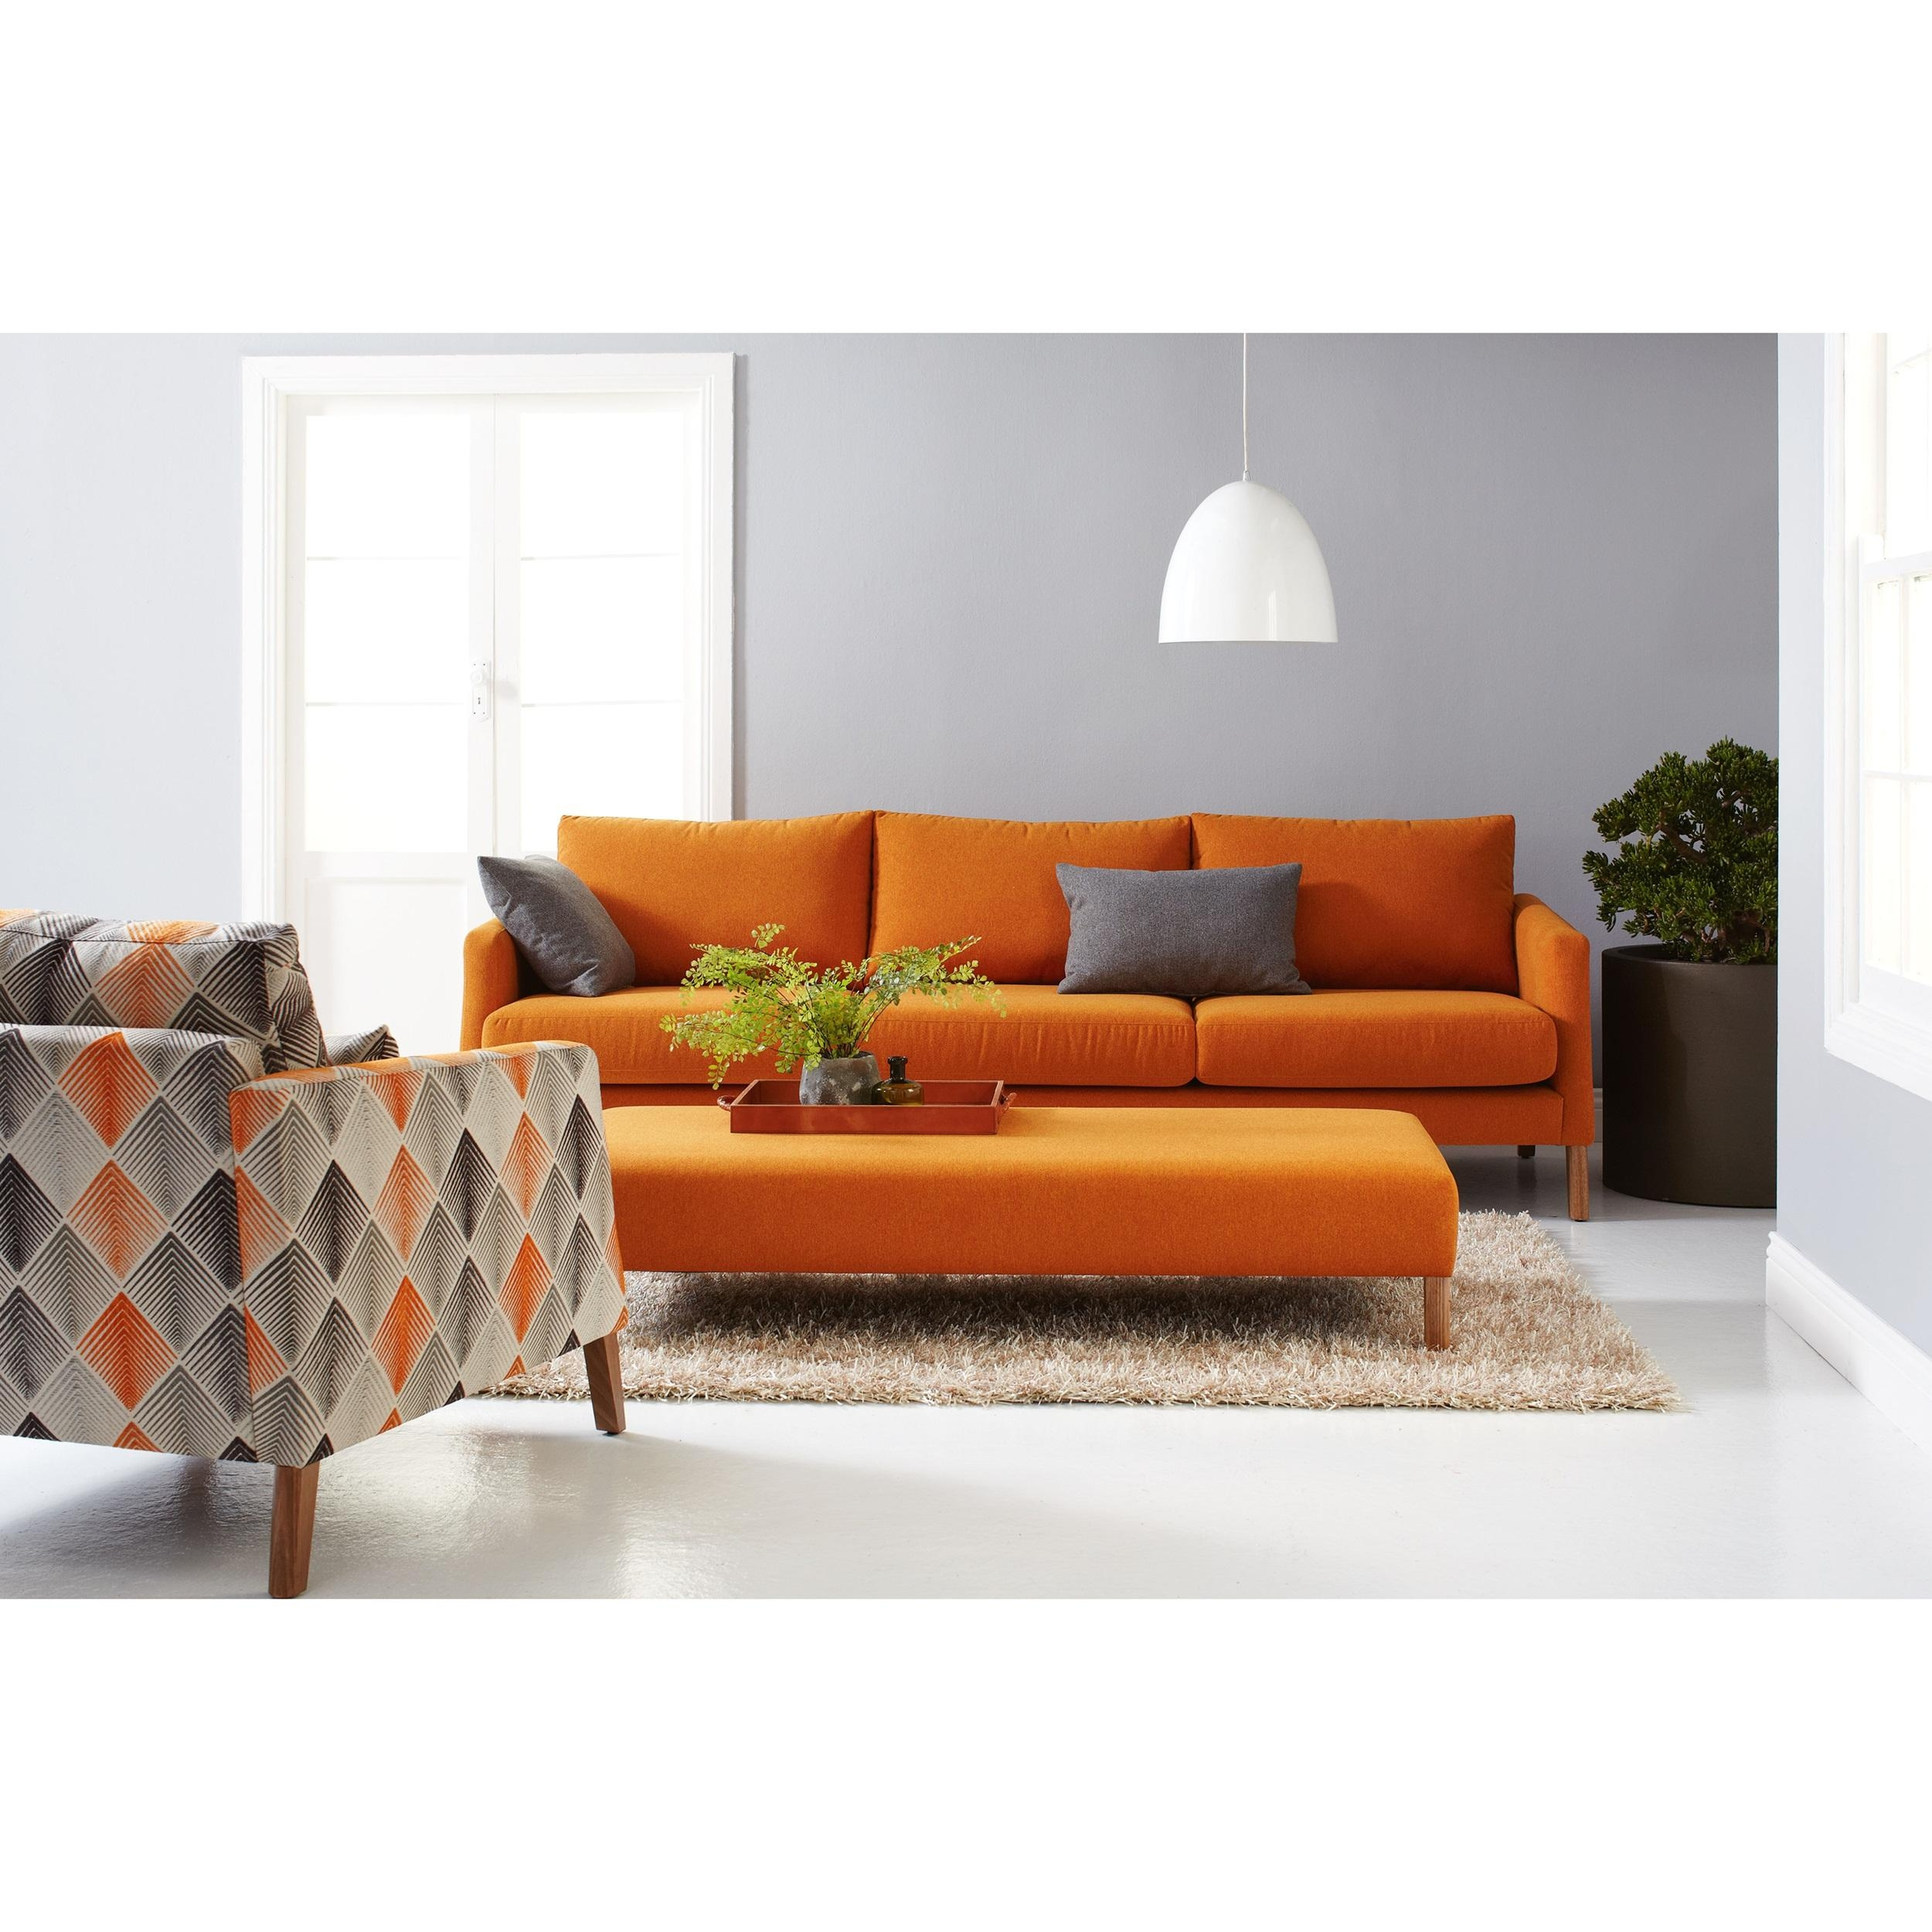 Sofa Orange 20 Best Orange Modern Sofas Sofa Ideas